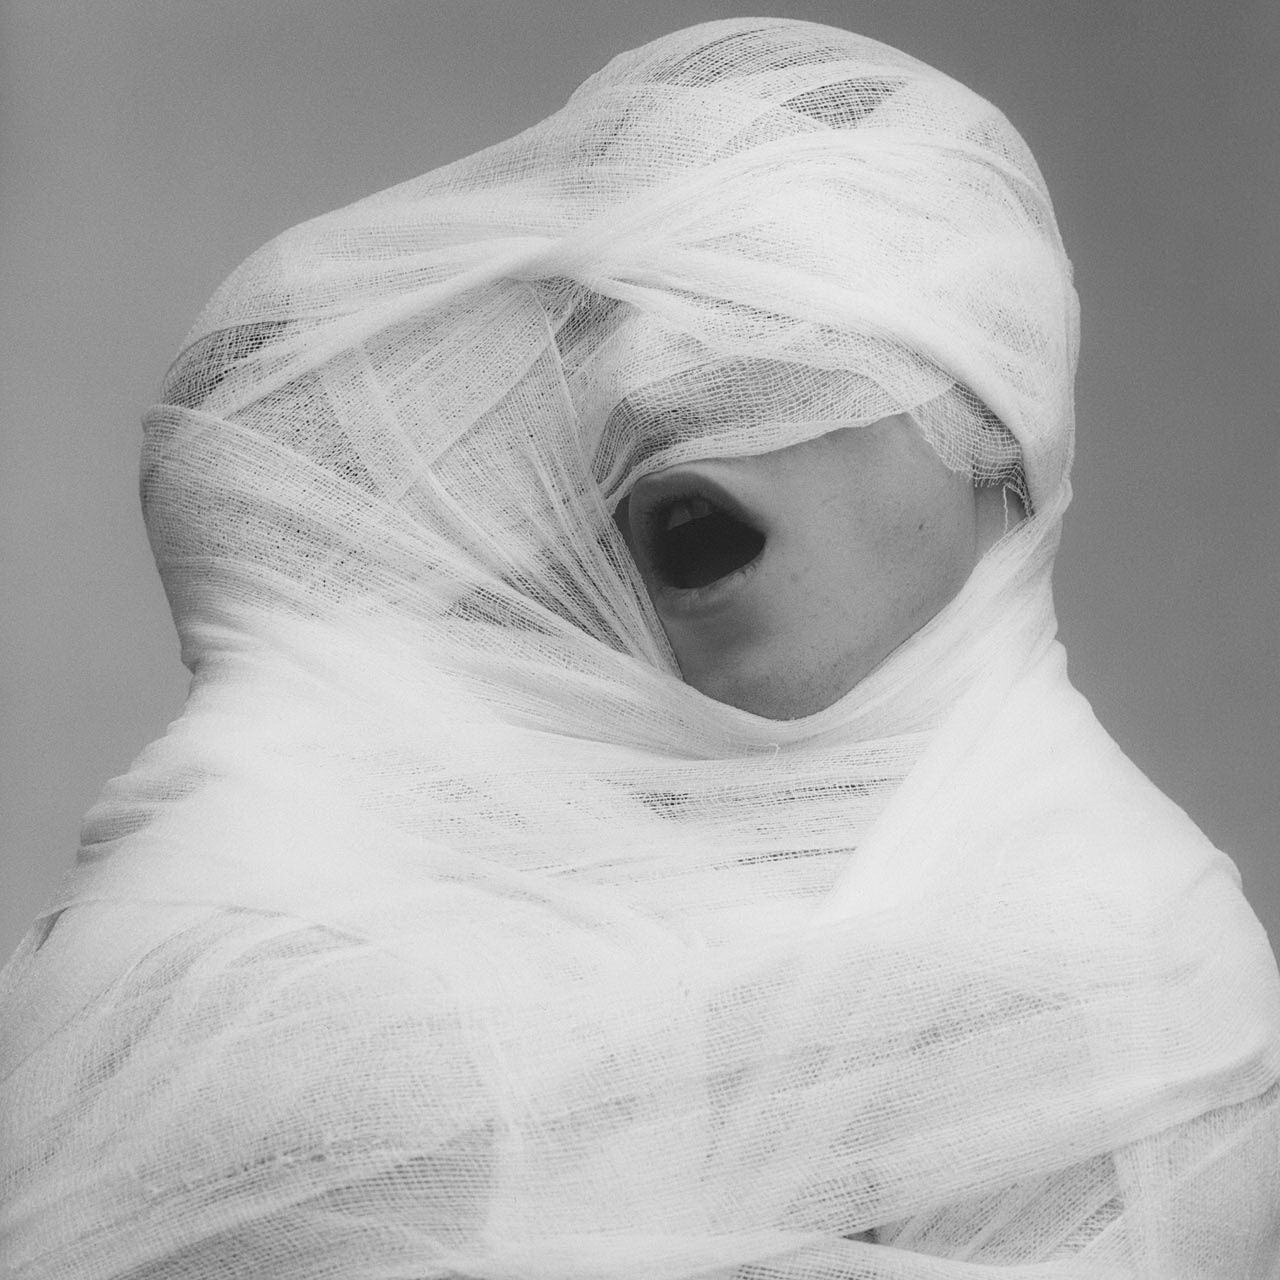 alecshao:  Robert Mapplethorpe - White Gauze, 1984